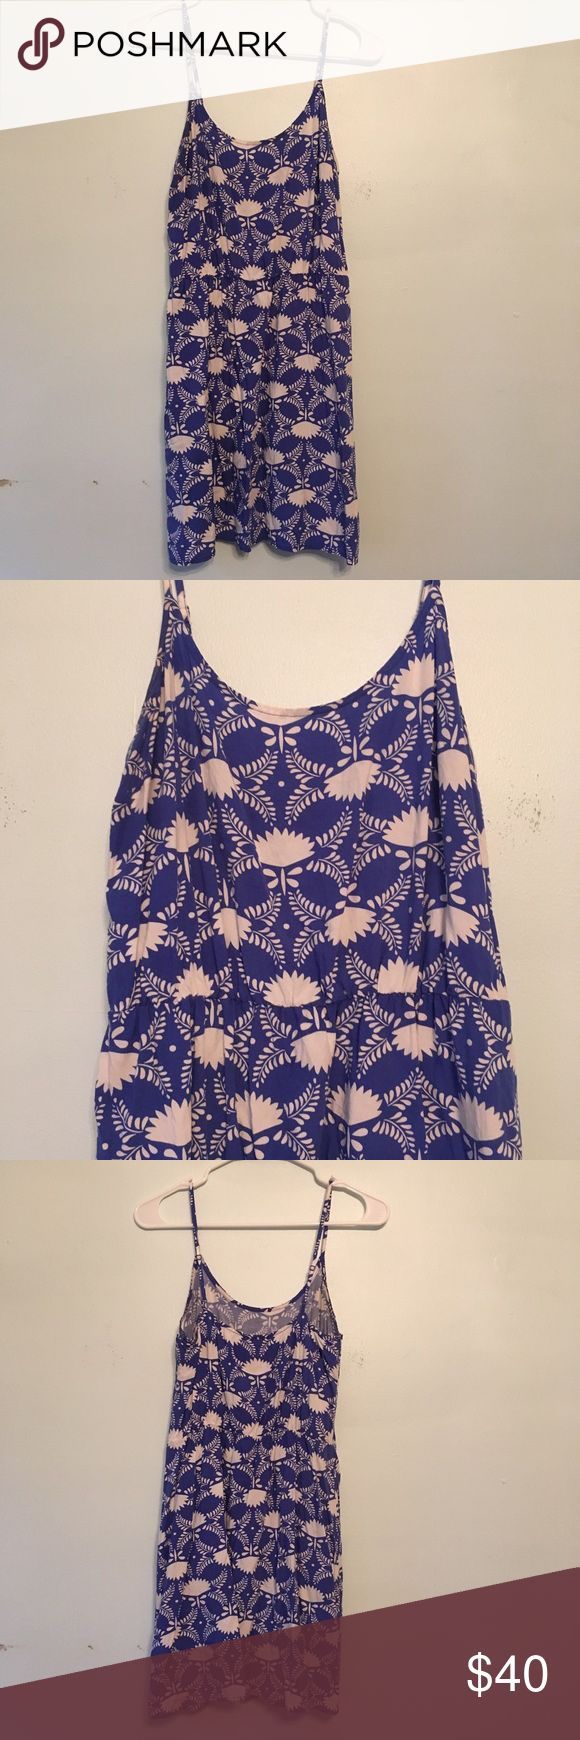 Old Navy Dress Medium Petite Cami Floral Rayon Old Navy Dress Medium Petite Cami Waisted Blue White Floral Rayon Fan Leaf   Cami dress with adjustable spaghetti straps. Elastic waist. Unlined.   Sold pre-owned with light wear.   INV bin F1 Old Navy Dresses